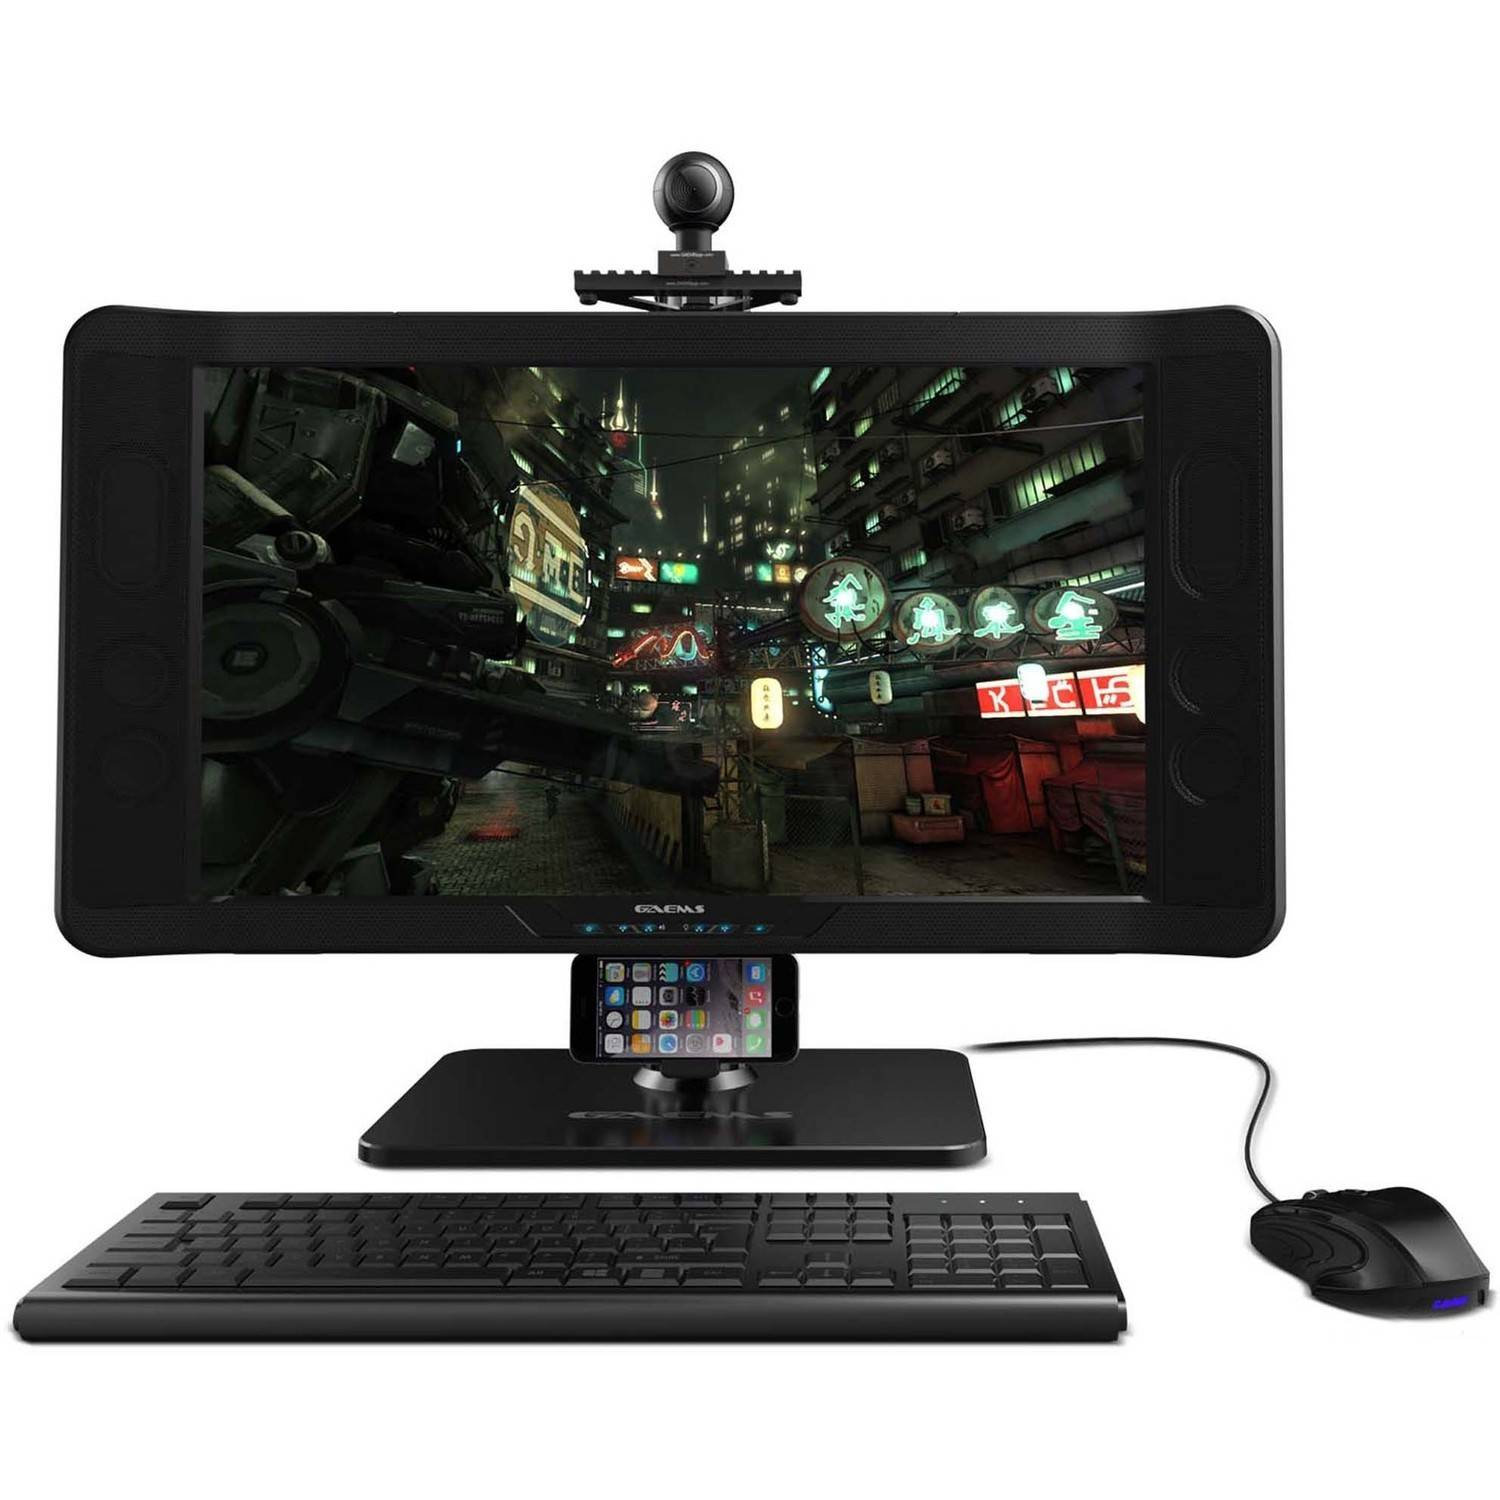 GAEMS Weighted Rail System Monitor Stand and Accessory Mount